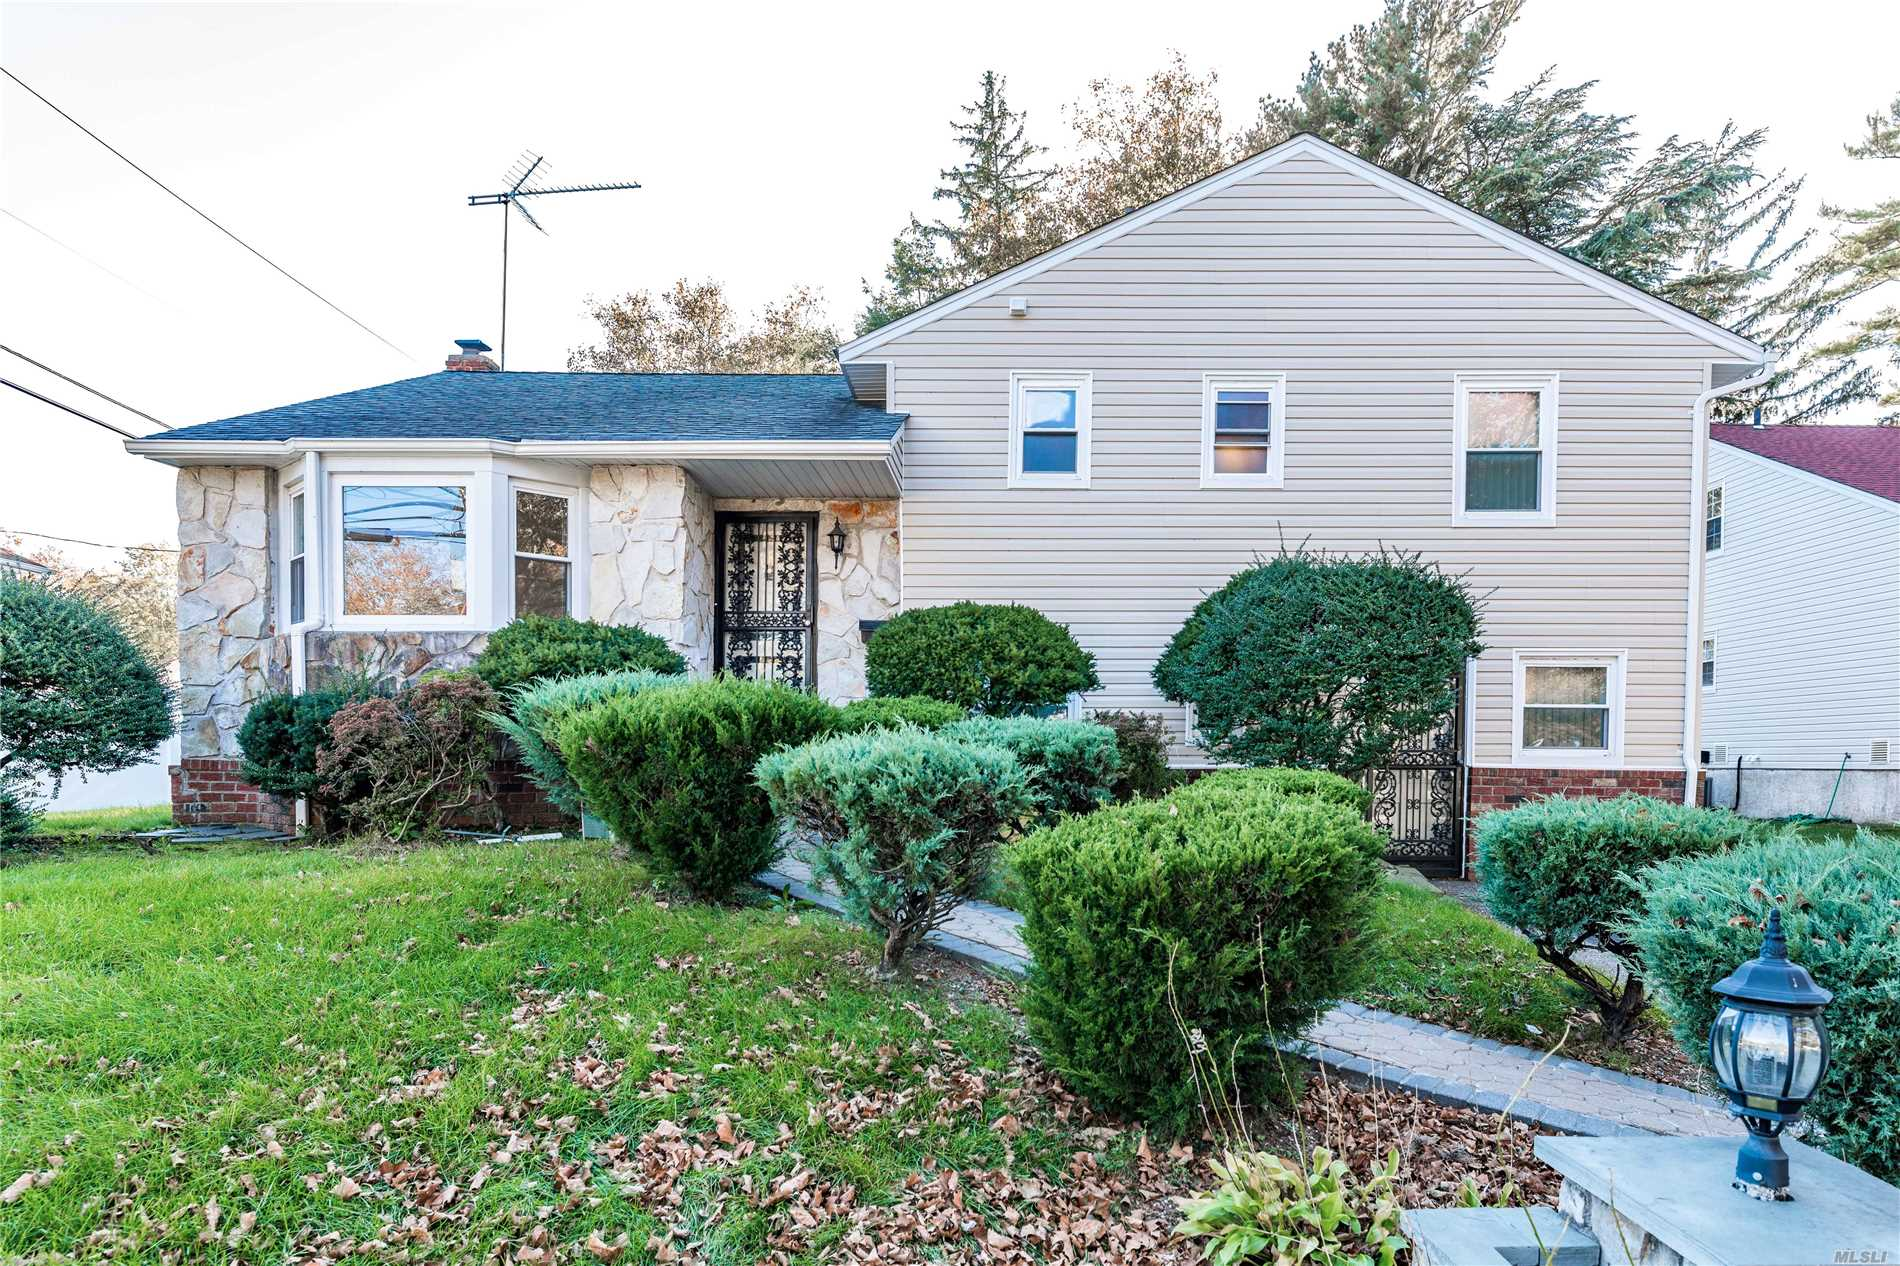 Stunning Split House At The Heart Of Desirable N. Woodmere. This House Features 3 Spacious Bedrooms And 2.5 Bathrooms. Marble Counter Top & Beautiful Back Splash. Luxurious Hardwood Floors Throughout. Enjoy Family Time In This Beautifully Secluded Landscaped Backyard. Best School District #14.